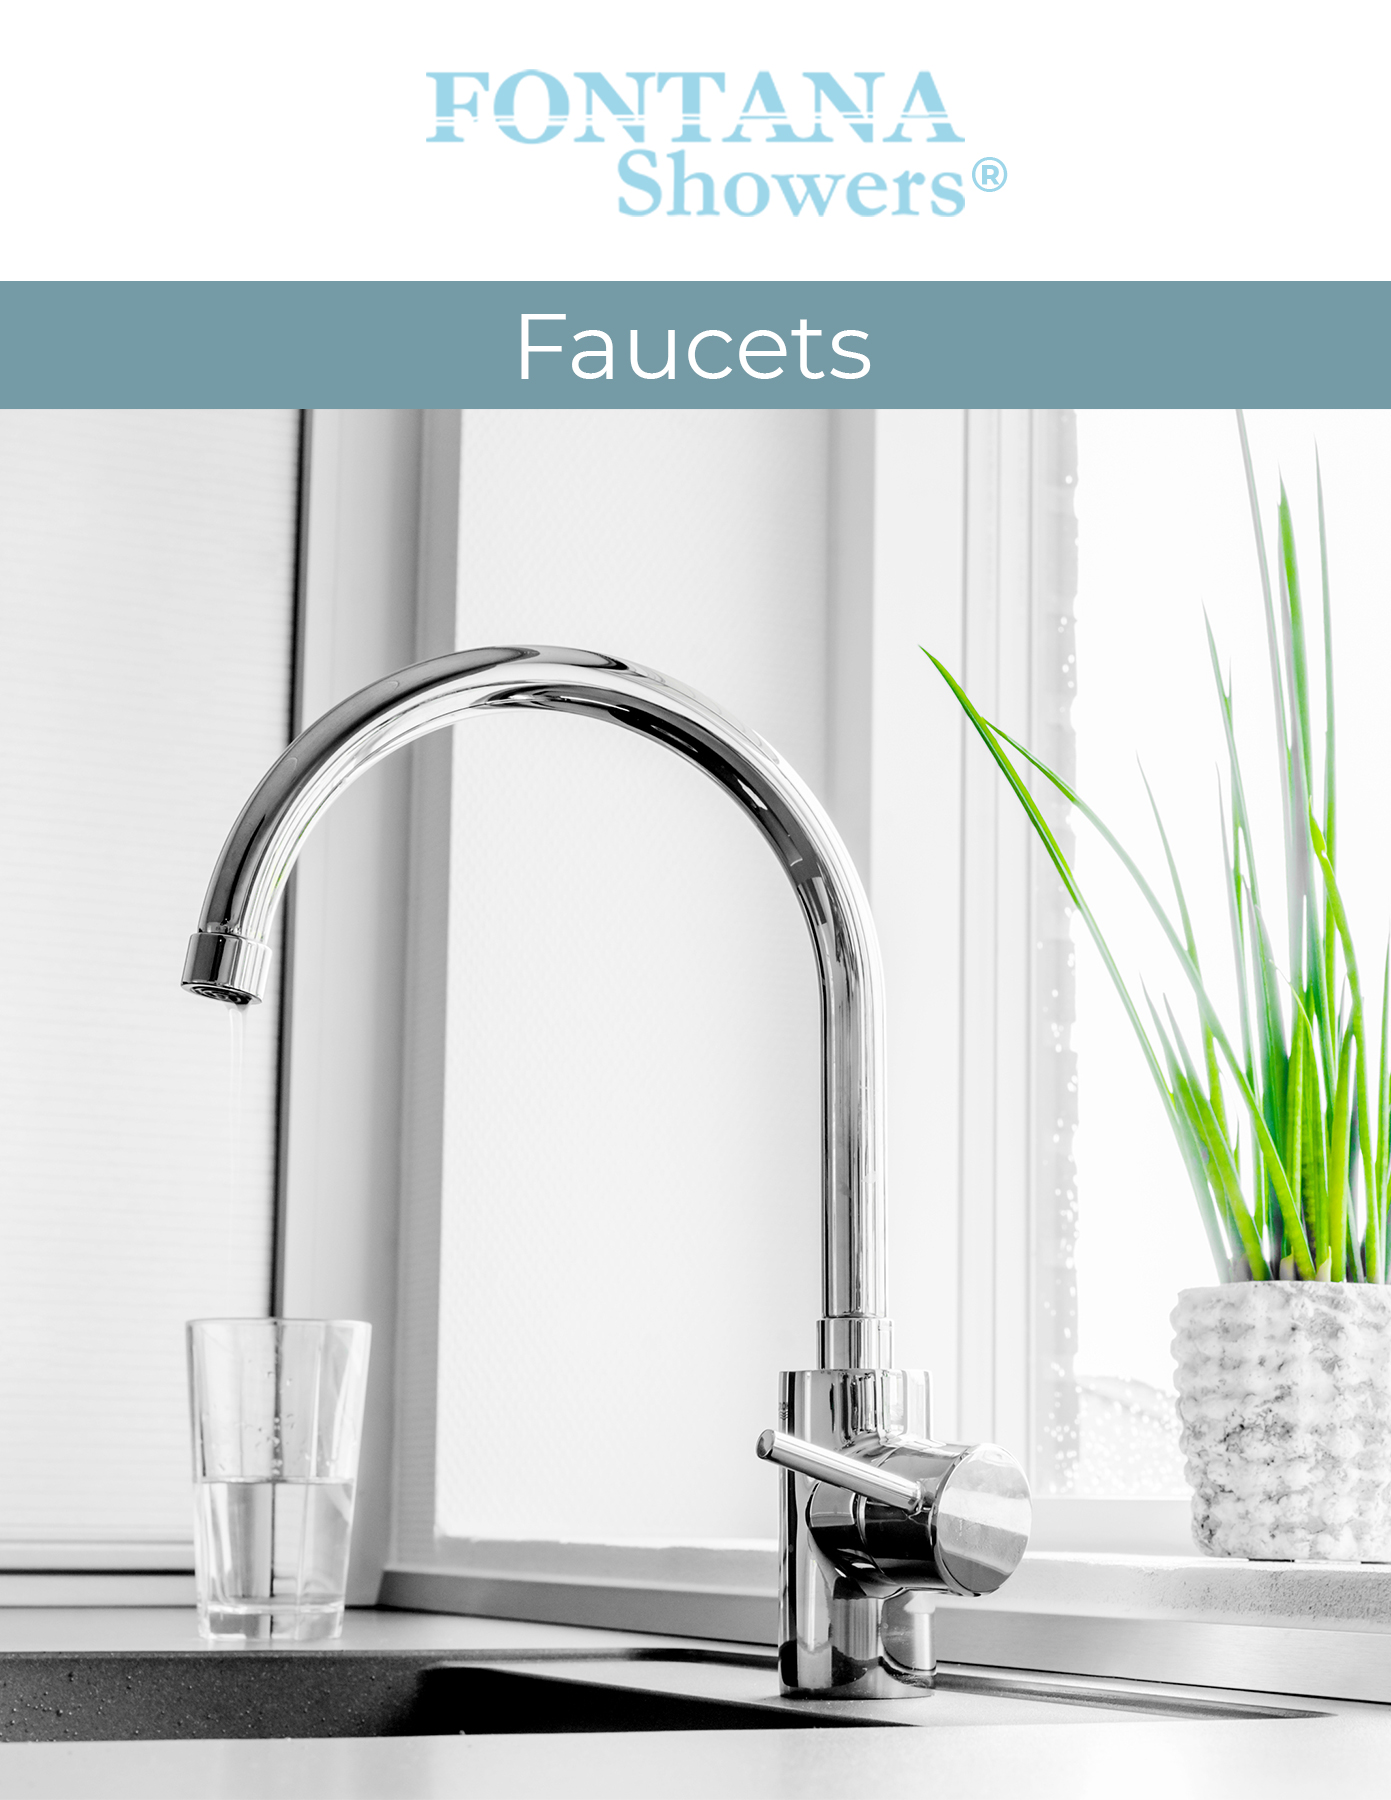 Fontana Showers commercial catalog Faucets